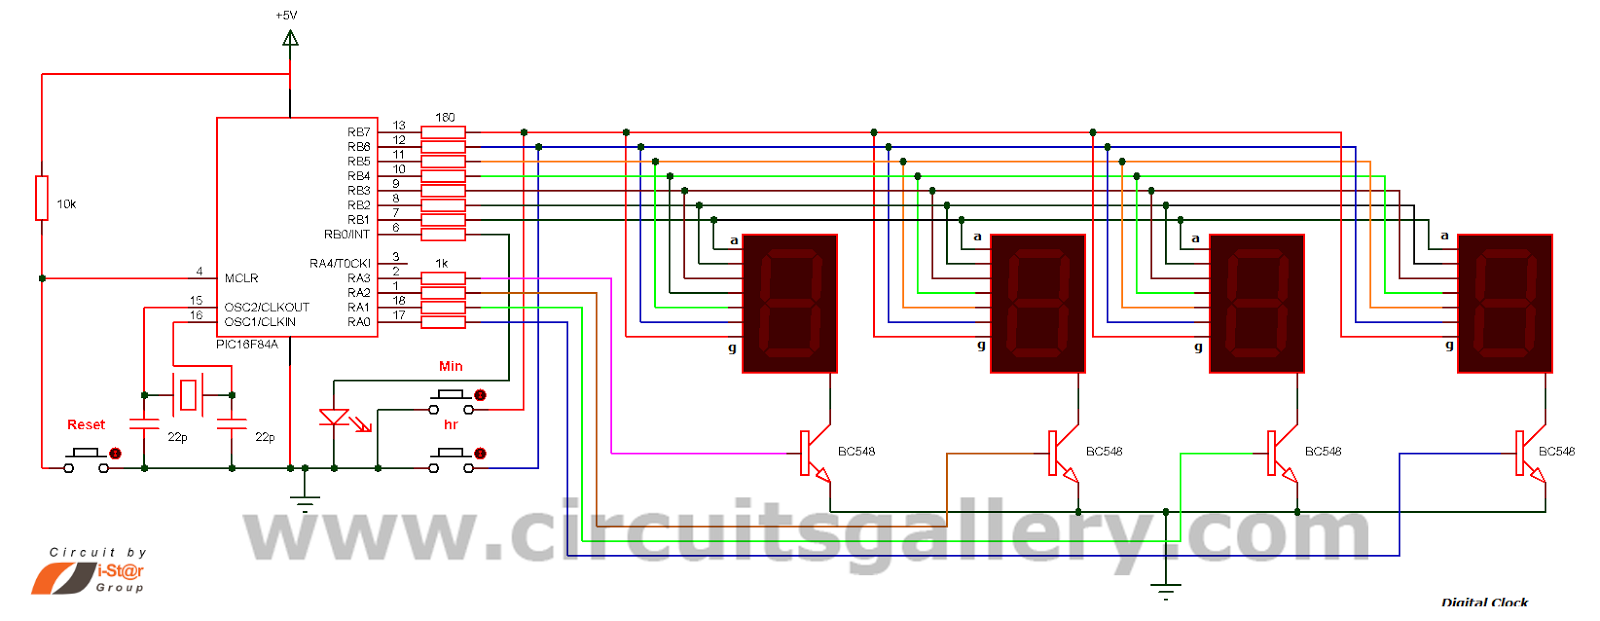 Real Time Clock Circuit Using Mircocontroller Pic16f84a Gallery Of How To Test A Triac Electronic Circuits And Diagramelectronics Projects Providing Lot Diy Diagrams